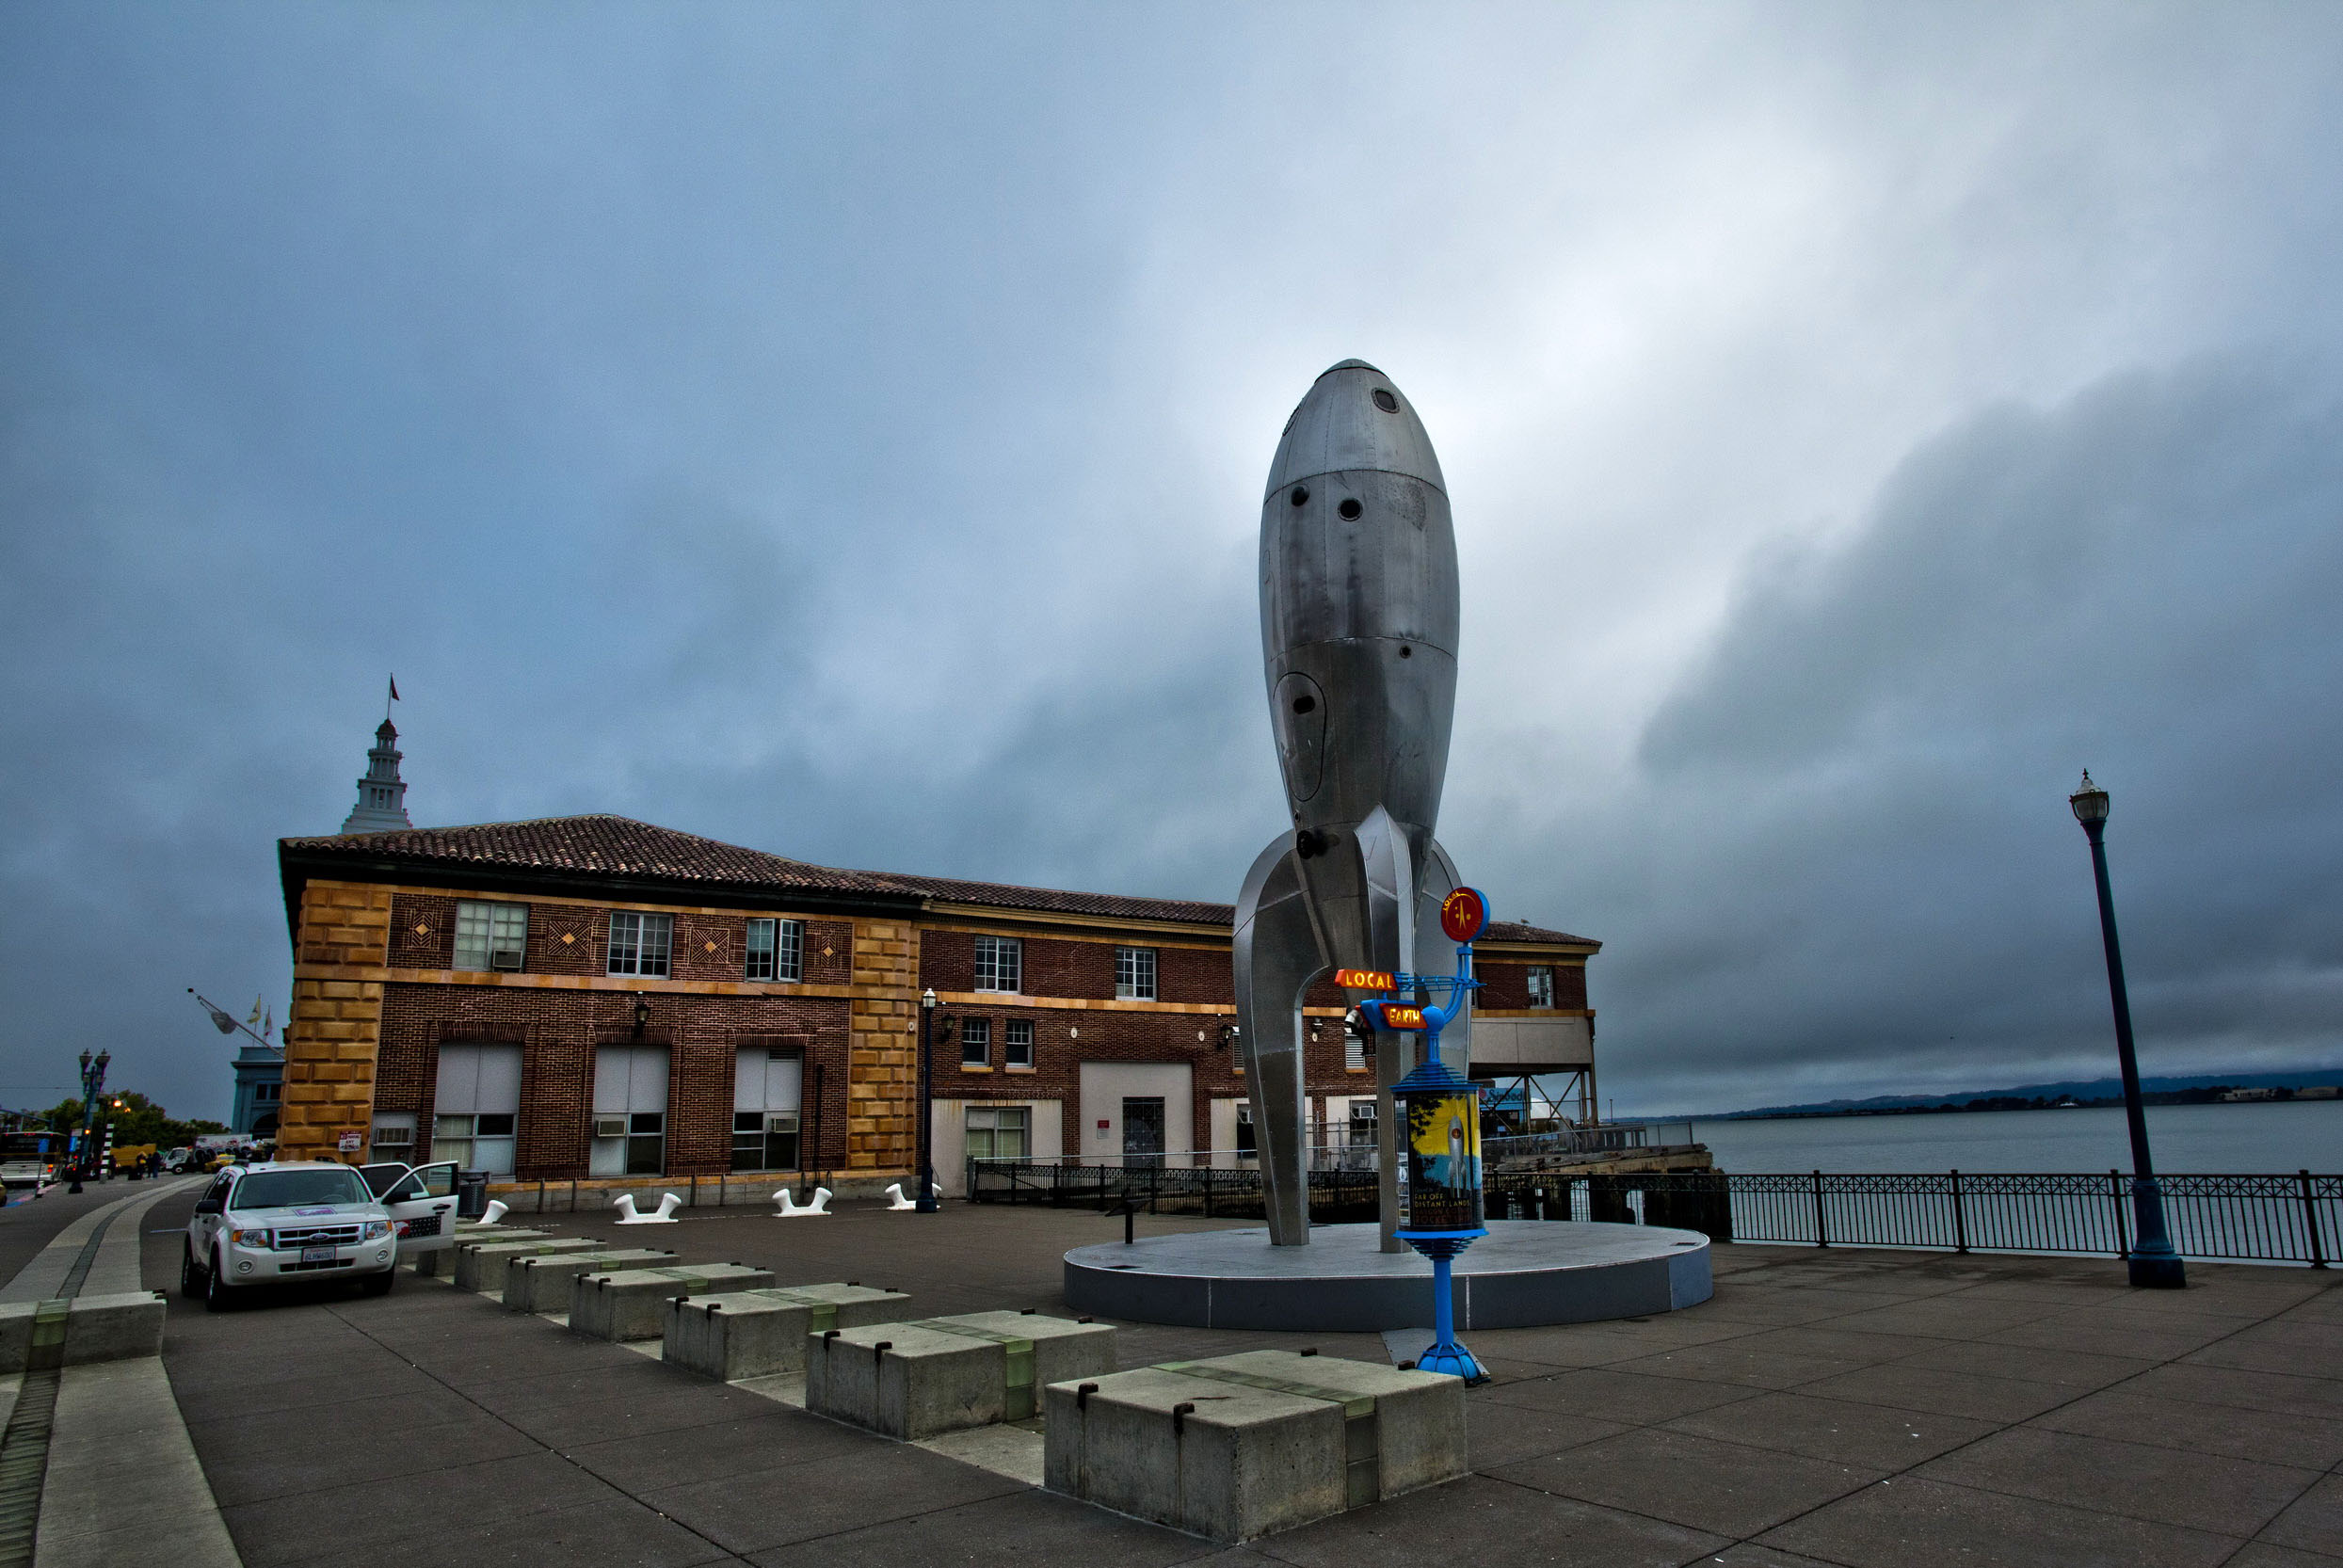 The Embarcadero Rincon Park area Space ship monument CA July 2011 06